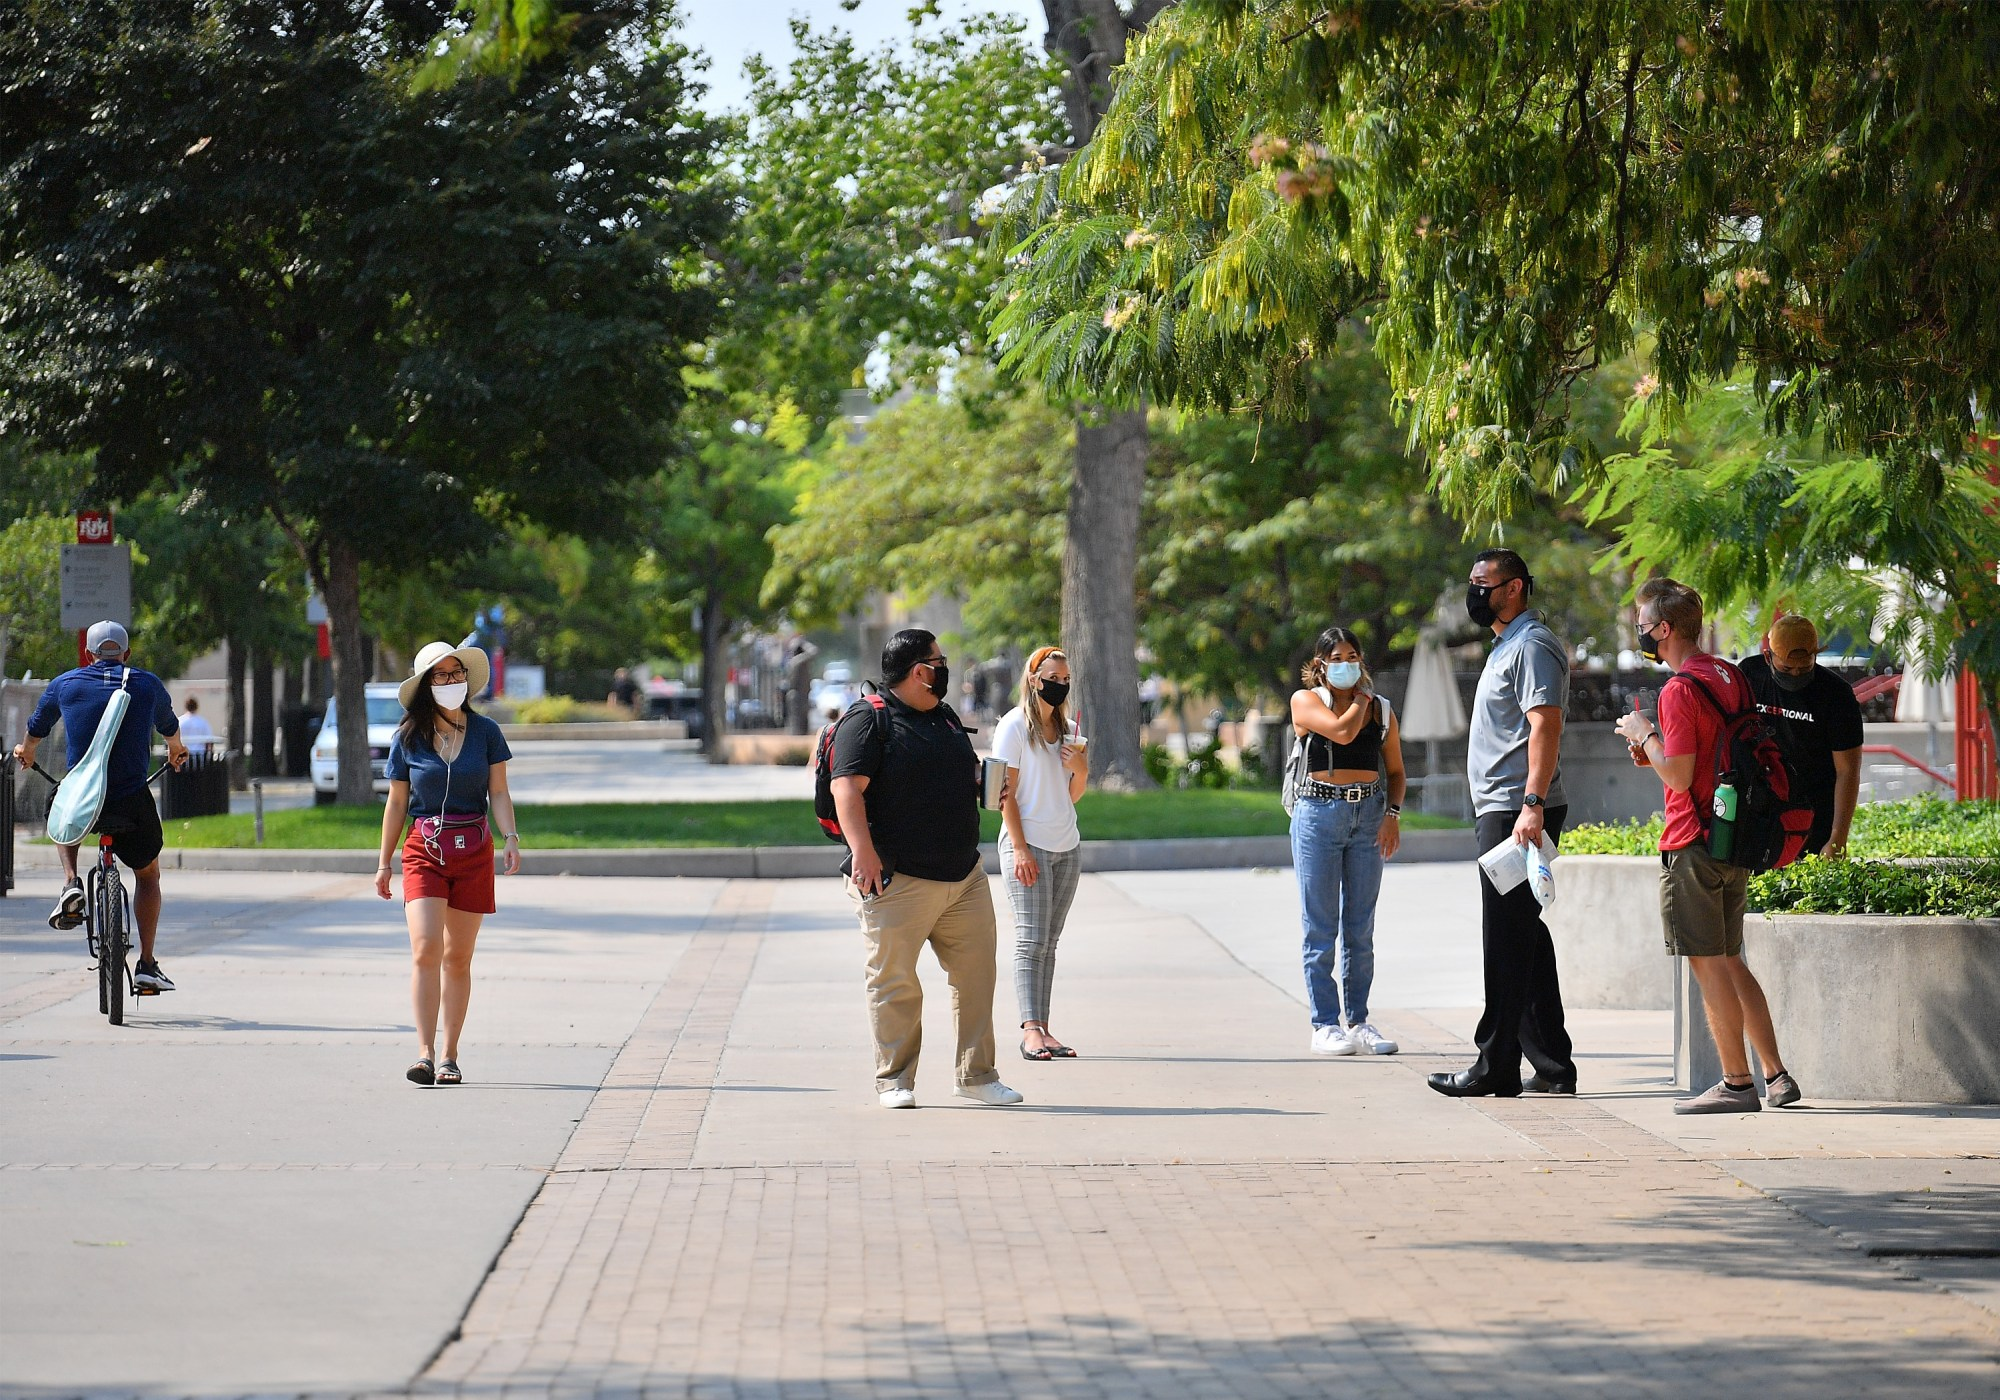 Students At The University Of New Mexico Attend Classes On First Day of New School Year